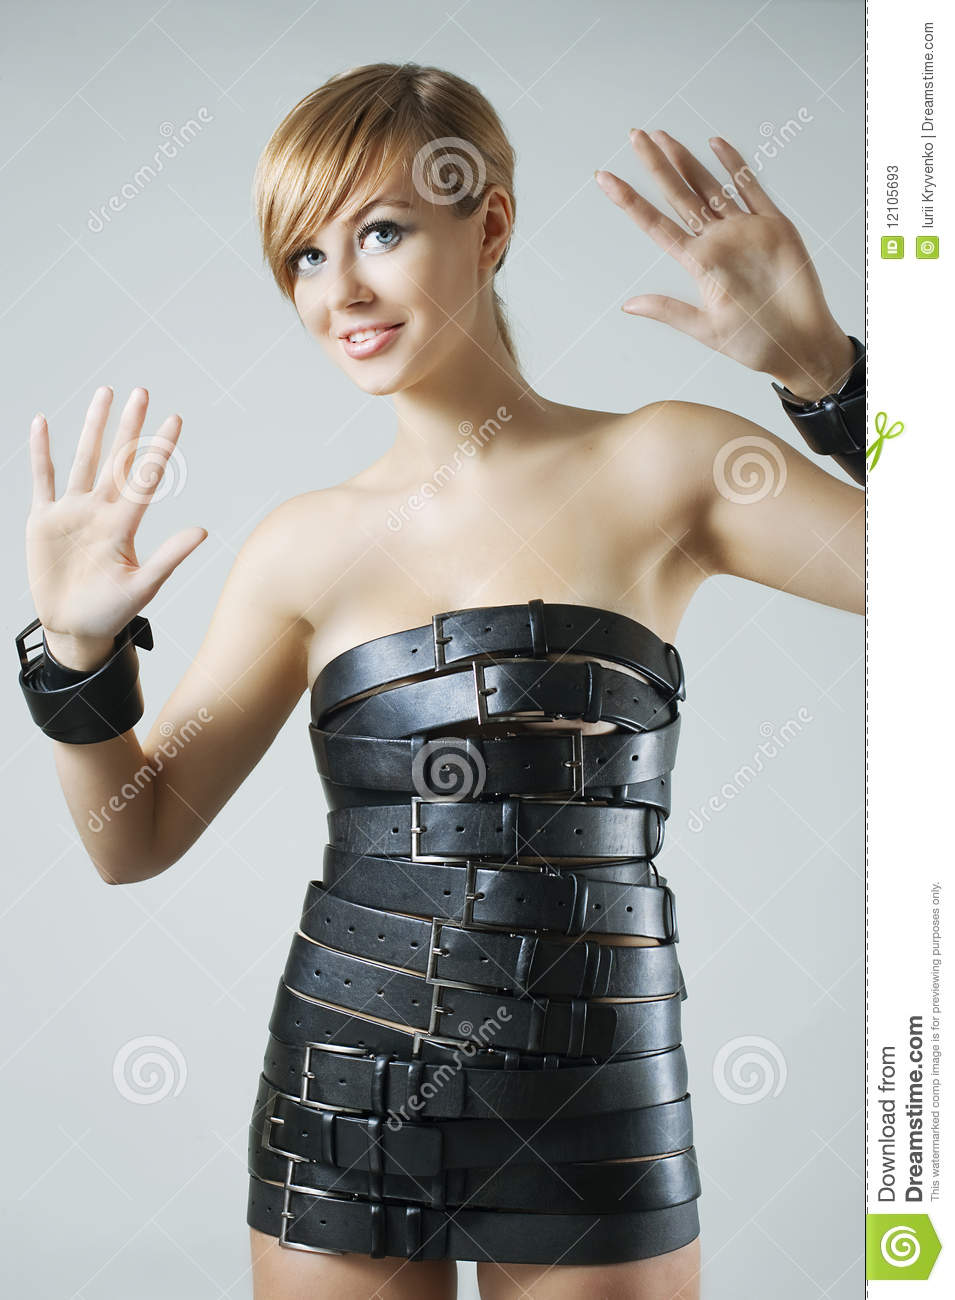 Dress Made From Leather Belts Stock Image Image Of Belt